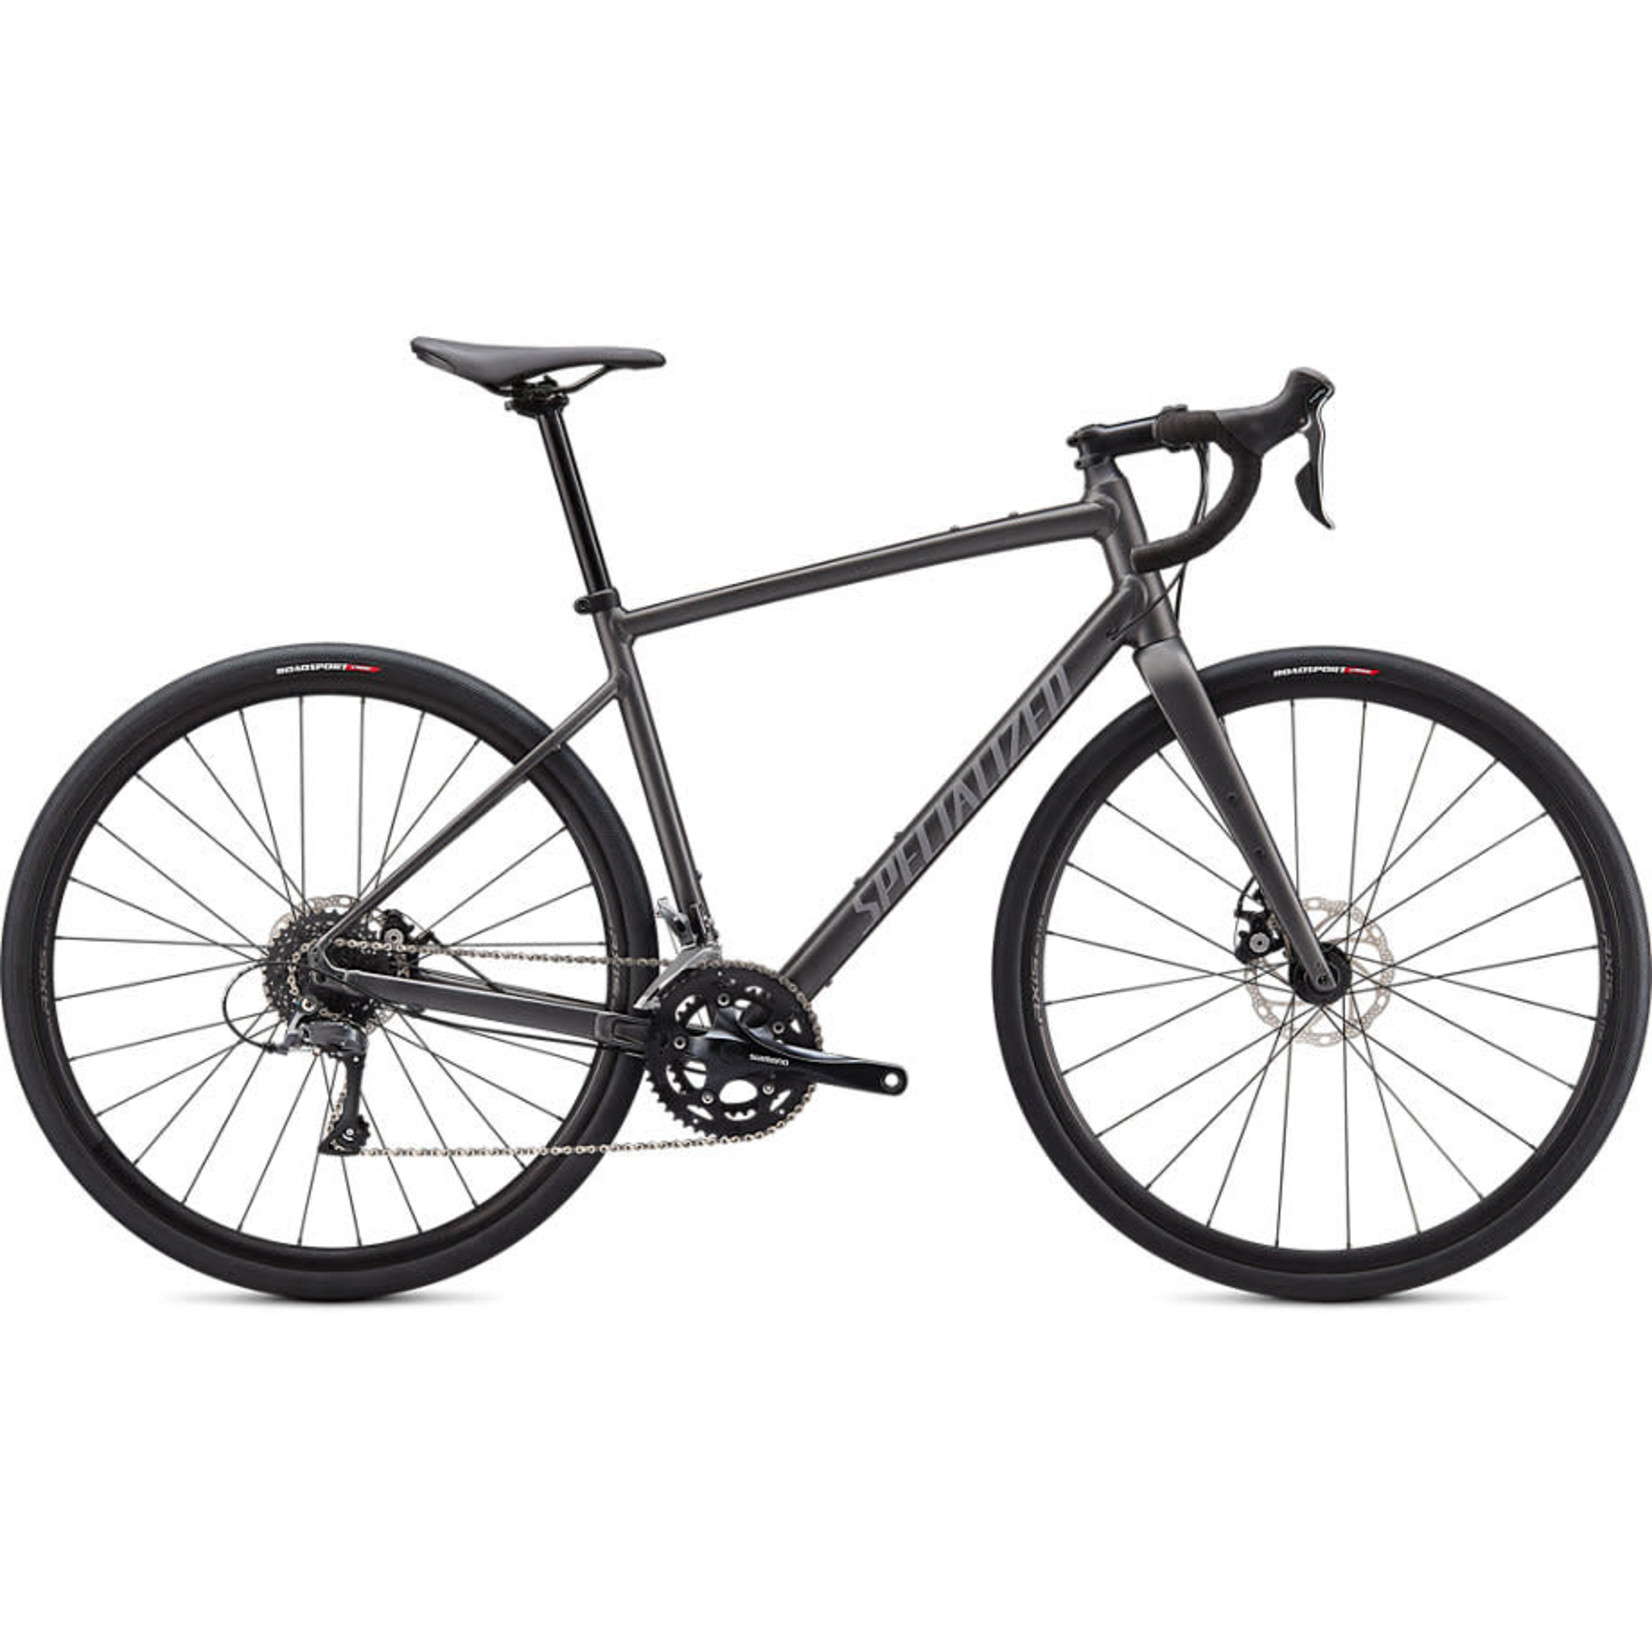 Specialized 2021 Specialized Diverge E5